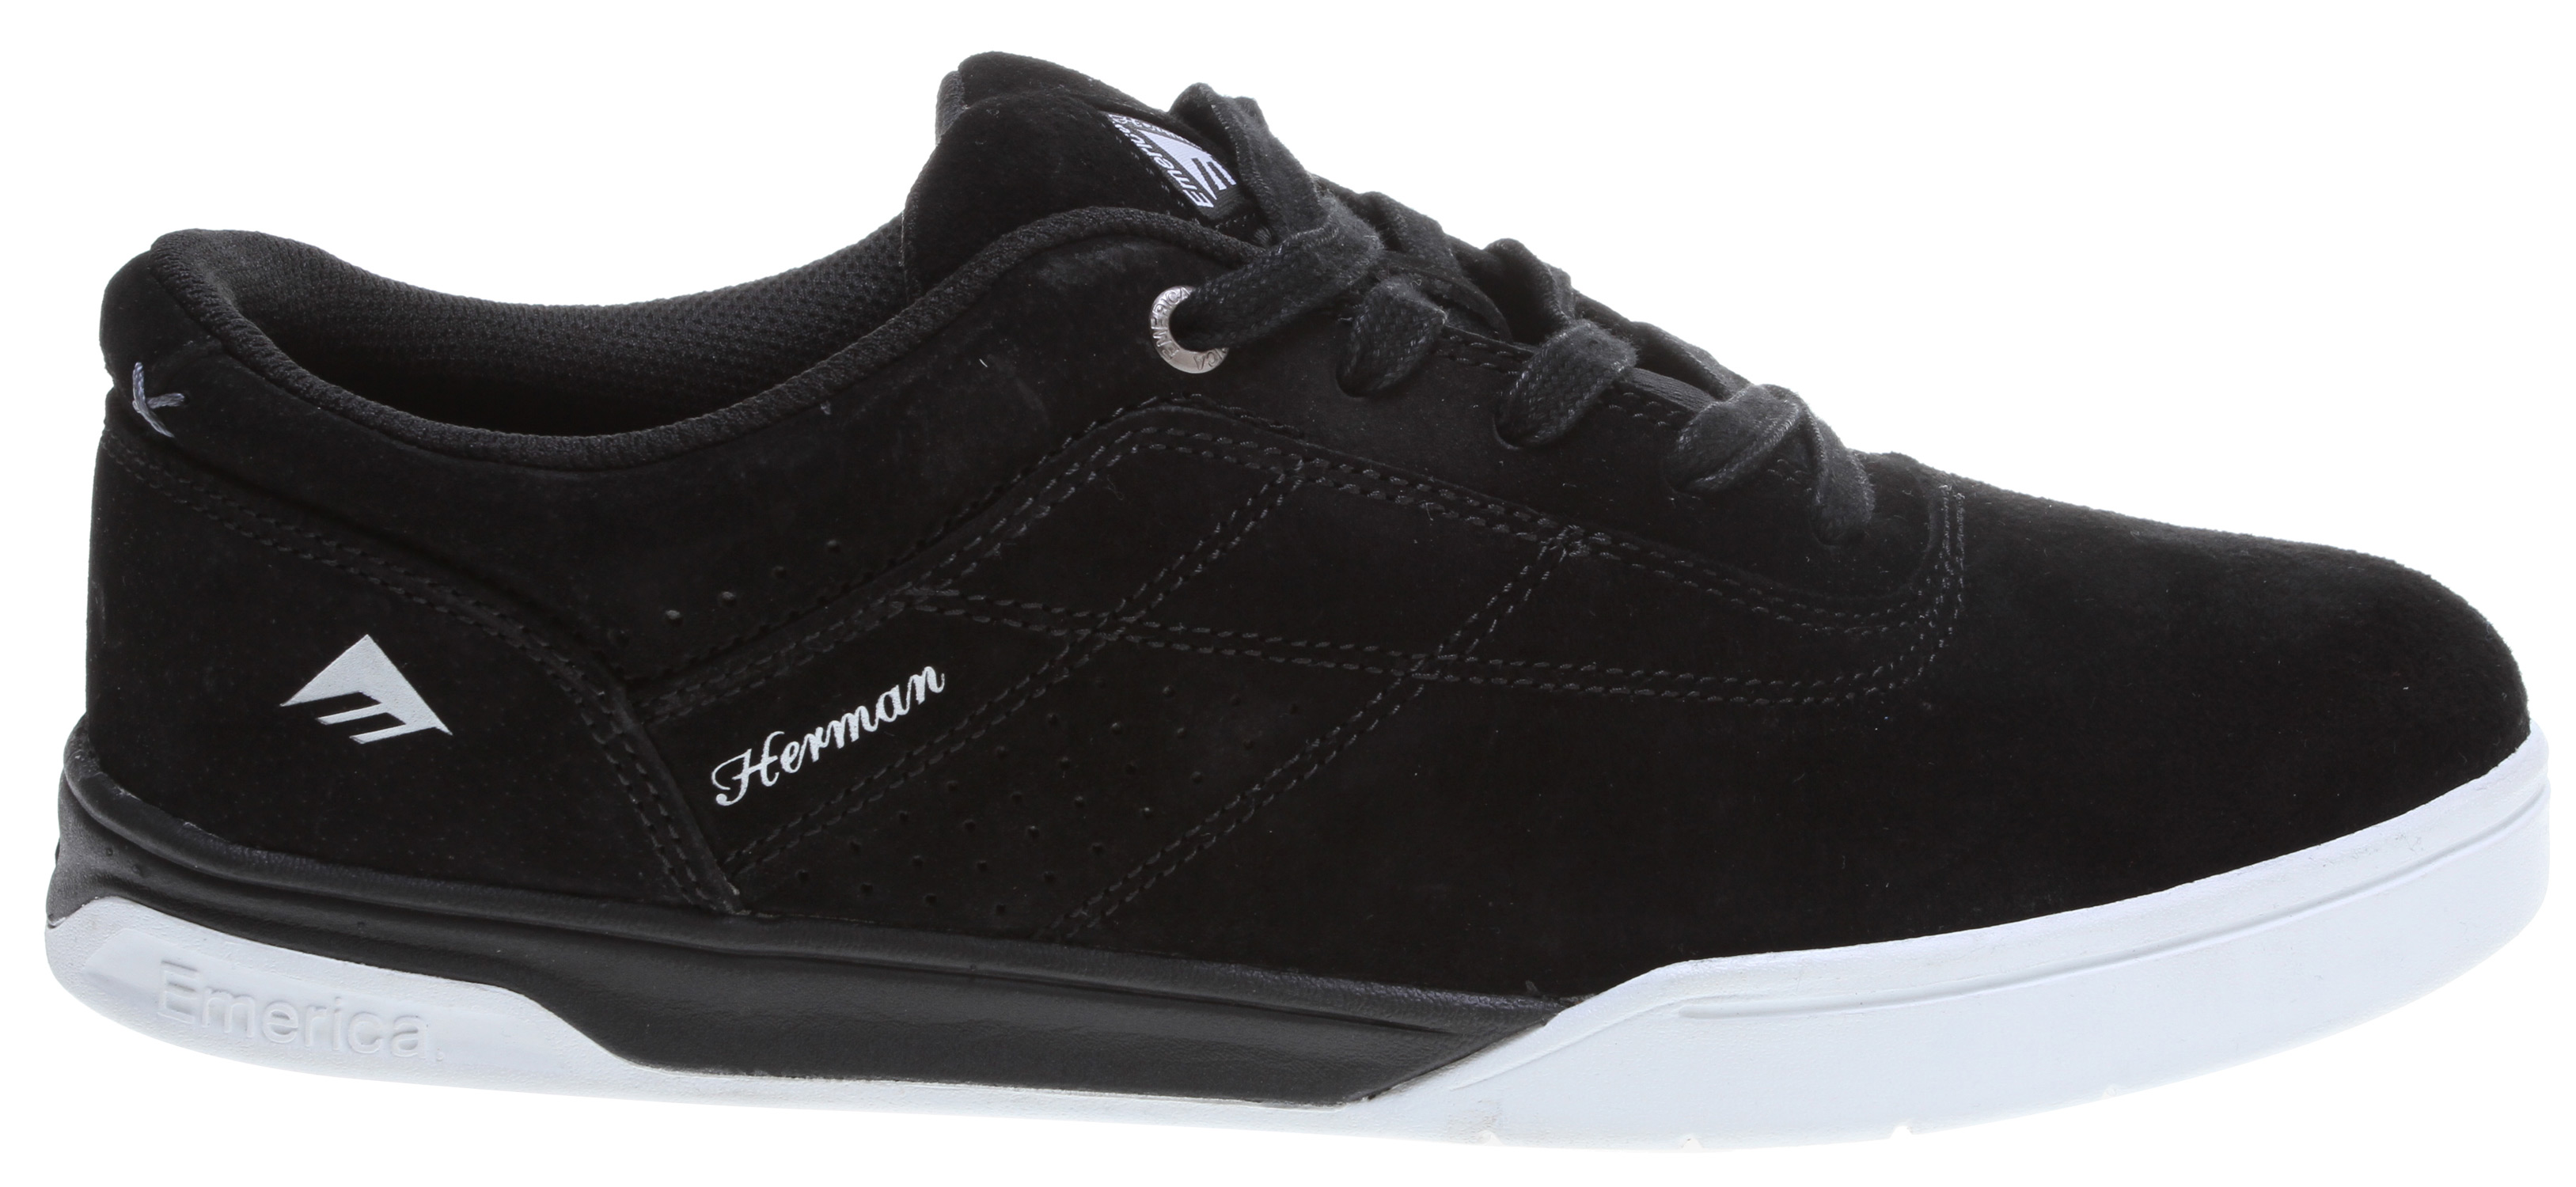 Skateboard Key Features of the Emerica The Herman G6 Skate Shoes: Designed by Bryan Herman Breathable tongue and medial sidewall keep feet cool One solid upper panel covers toe and Ollie area to help shoes last longer and provide better flick New G6 high-rebound lightweight foam footbed cushions bottom of feet Super flexible new lightweight cupsole design with G6 foam midsole provides loads of board feel for more accuracy Triangle tread pattern provides maximum grip for more confident skating - $54.95